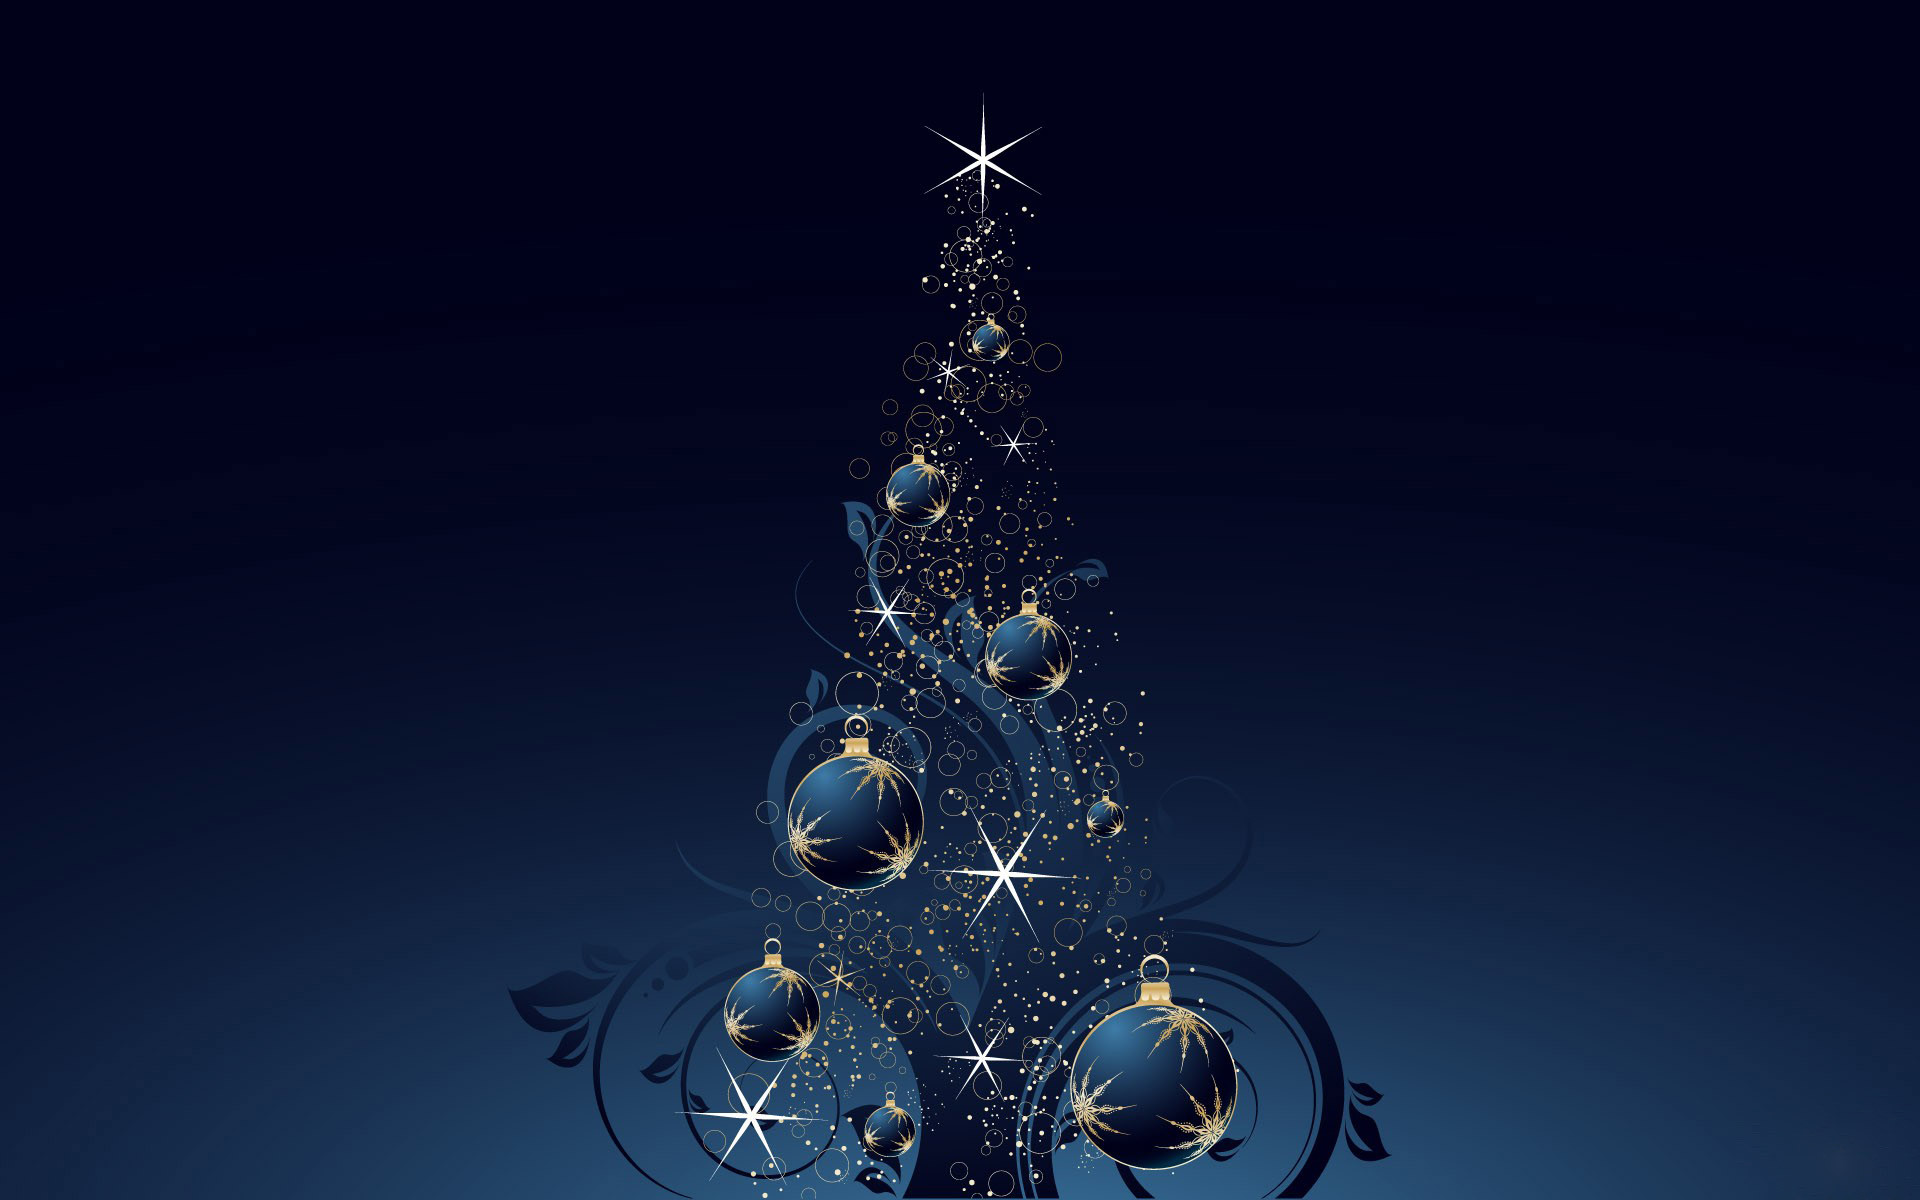 Animated Christmas Wallpapers For Desktop (56+ Images